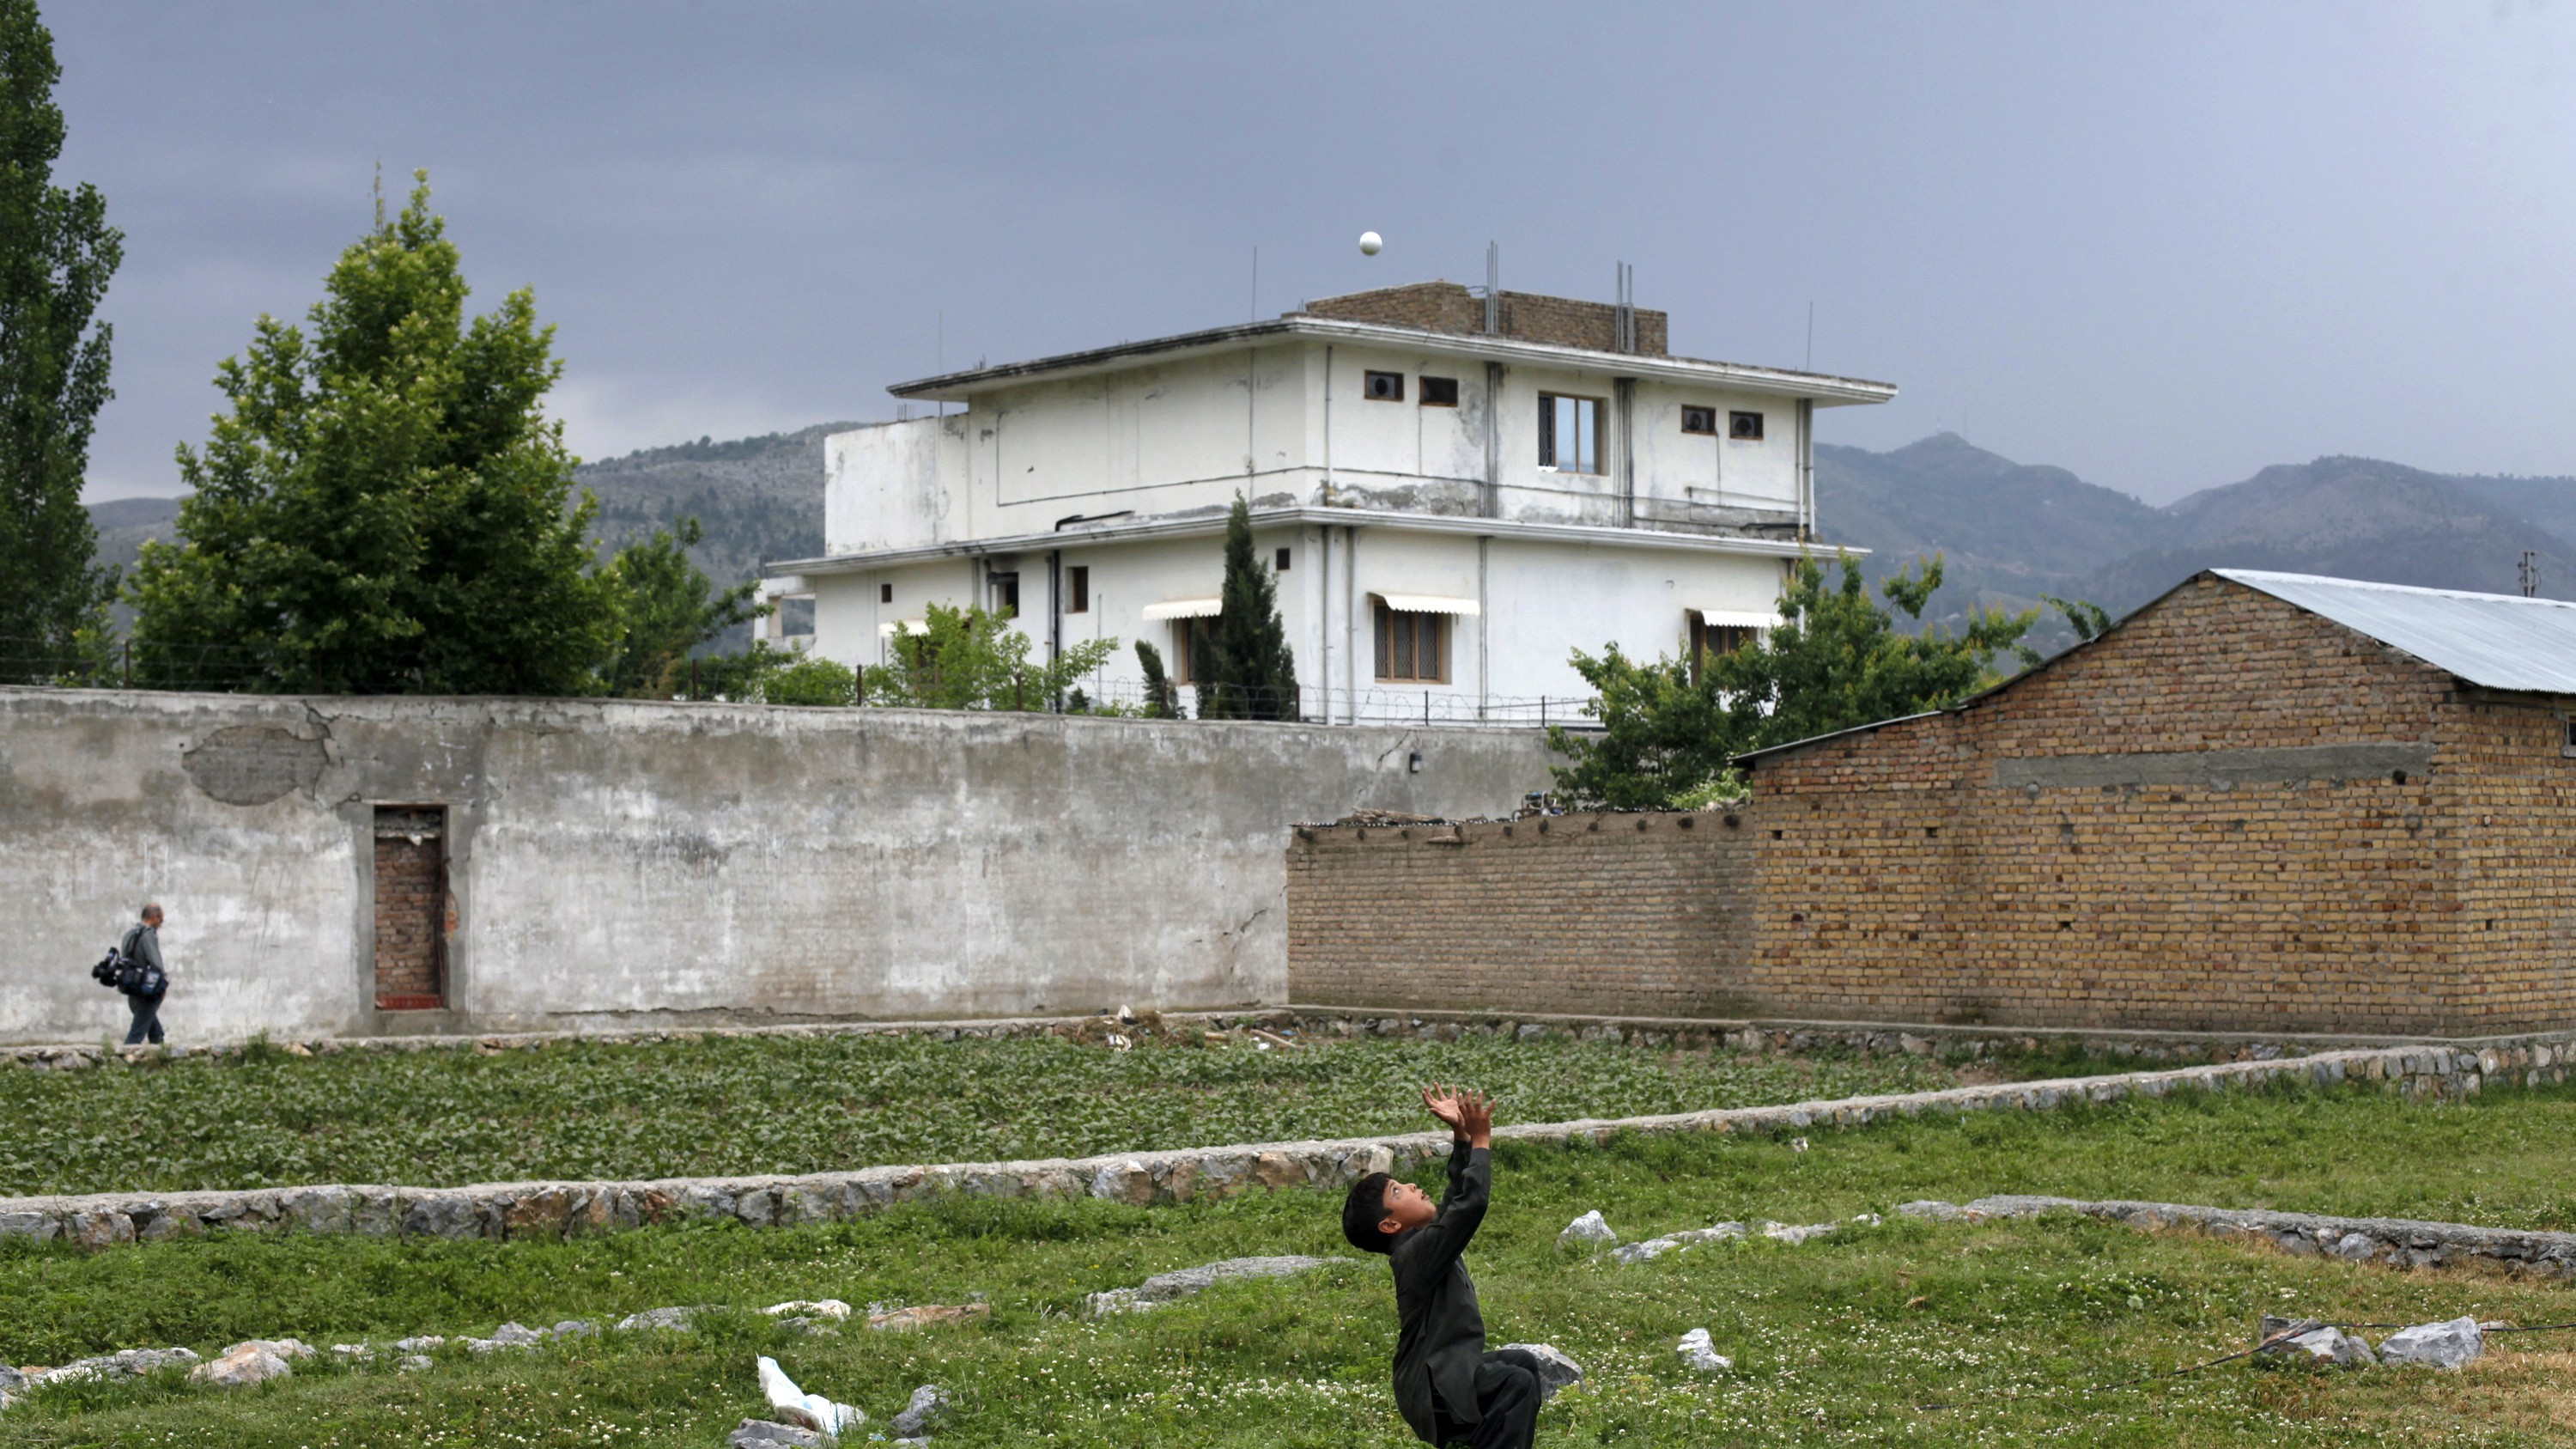 A boy plays with a tennis ball in front of Osama bin Laden's compound in Abbottabad in this May 5, 2011 file picture. Osama bin Laden was killed almost a year ago, on May 2, 2011, by a United States special operations military unit in a raid on his compound in Abbottabad.